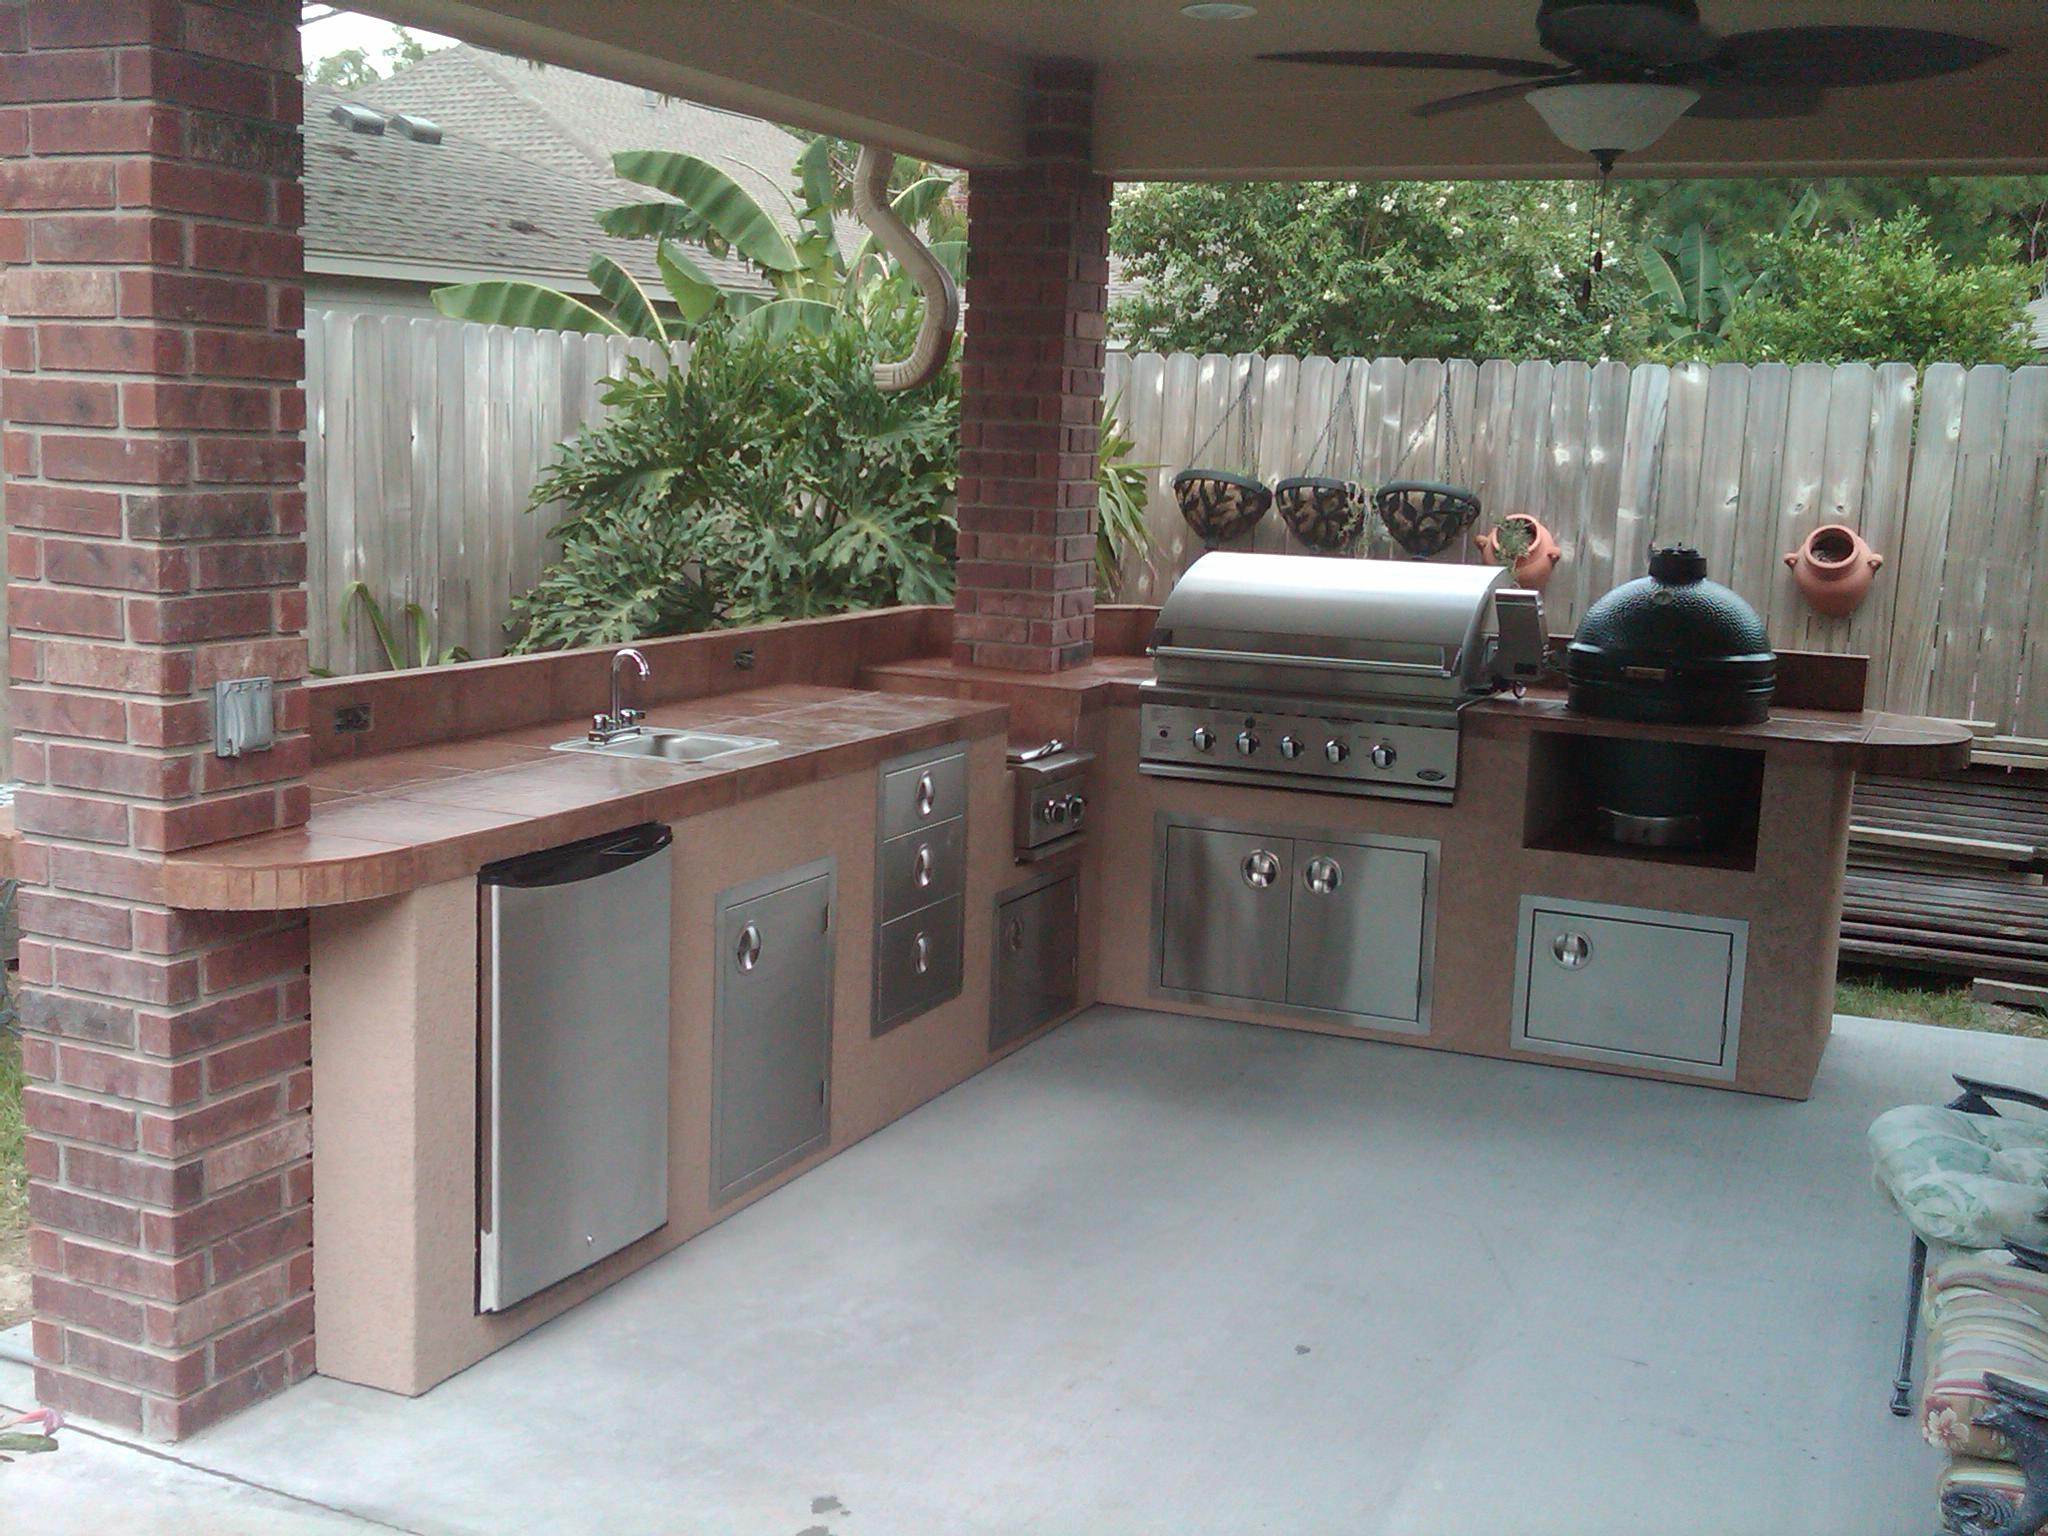 Outdoor Kitchen Under Patio Cover Houston Tx